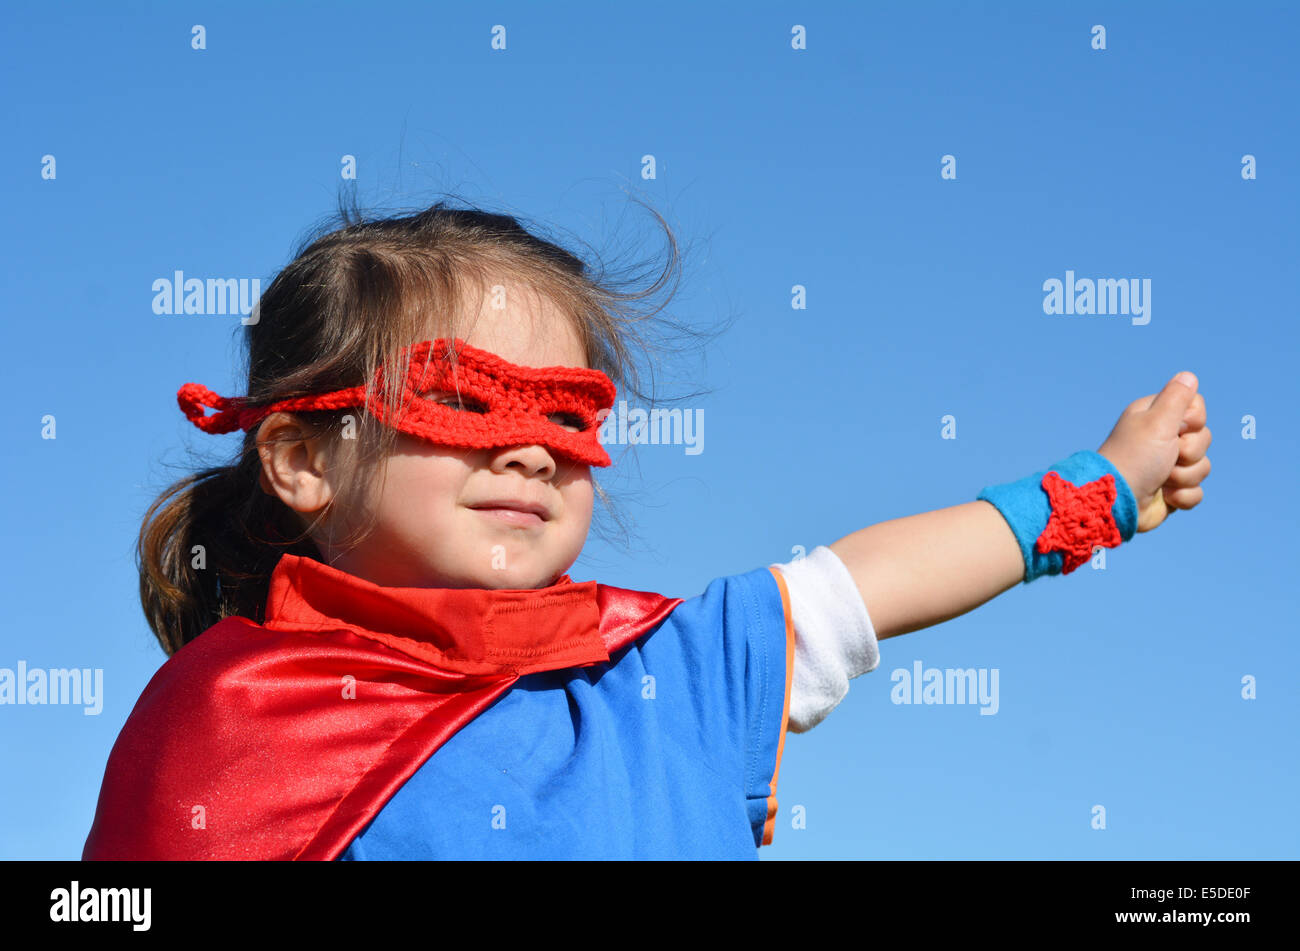 Superhero child (girl)  against dramatic blue sky background with copy space. concept photo of Super hero, girl - Stock Image